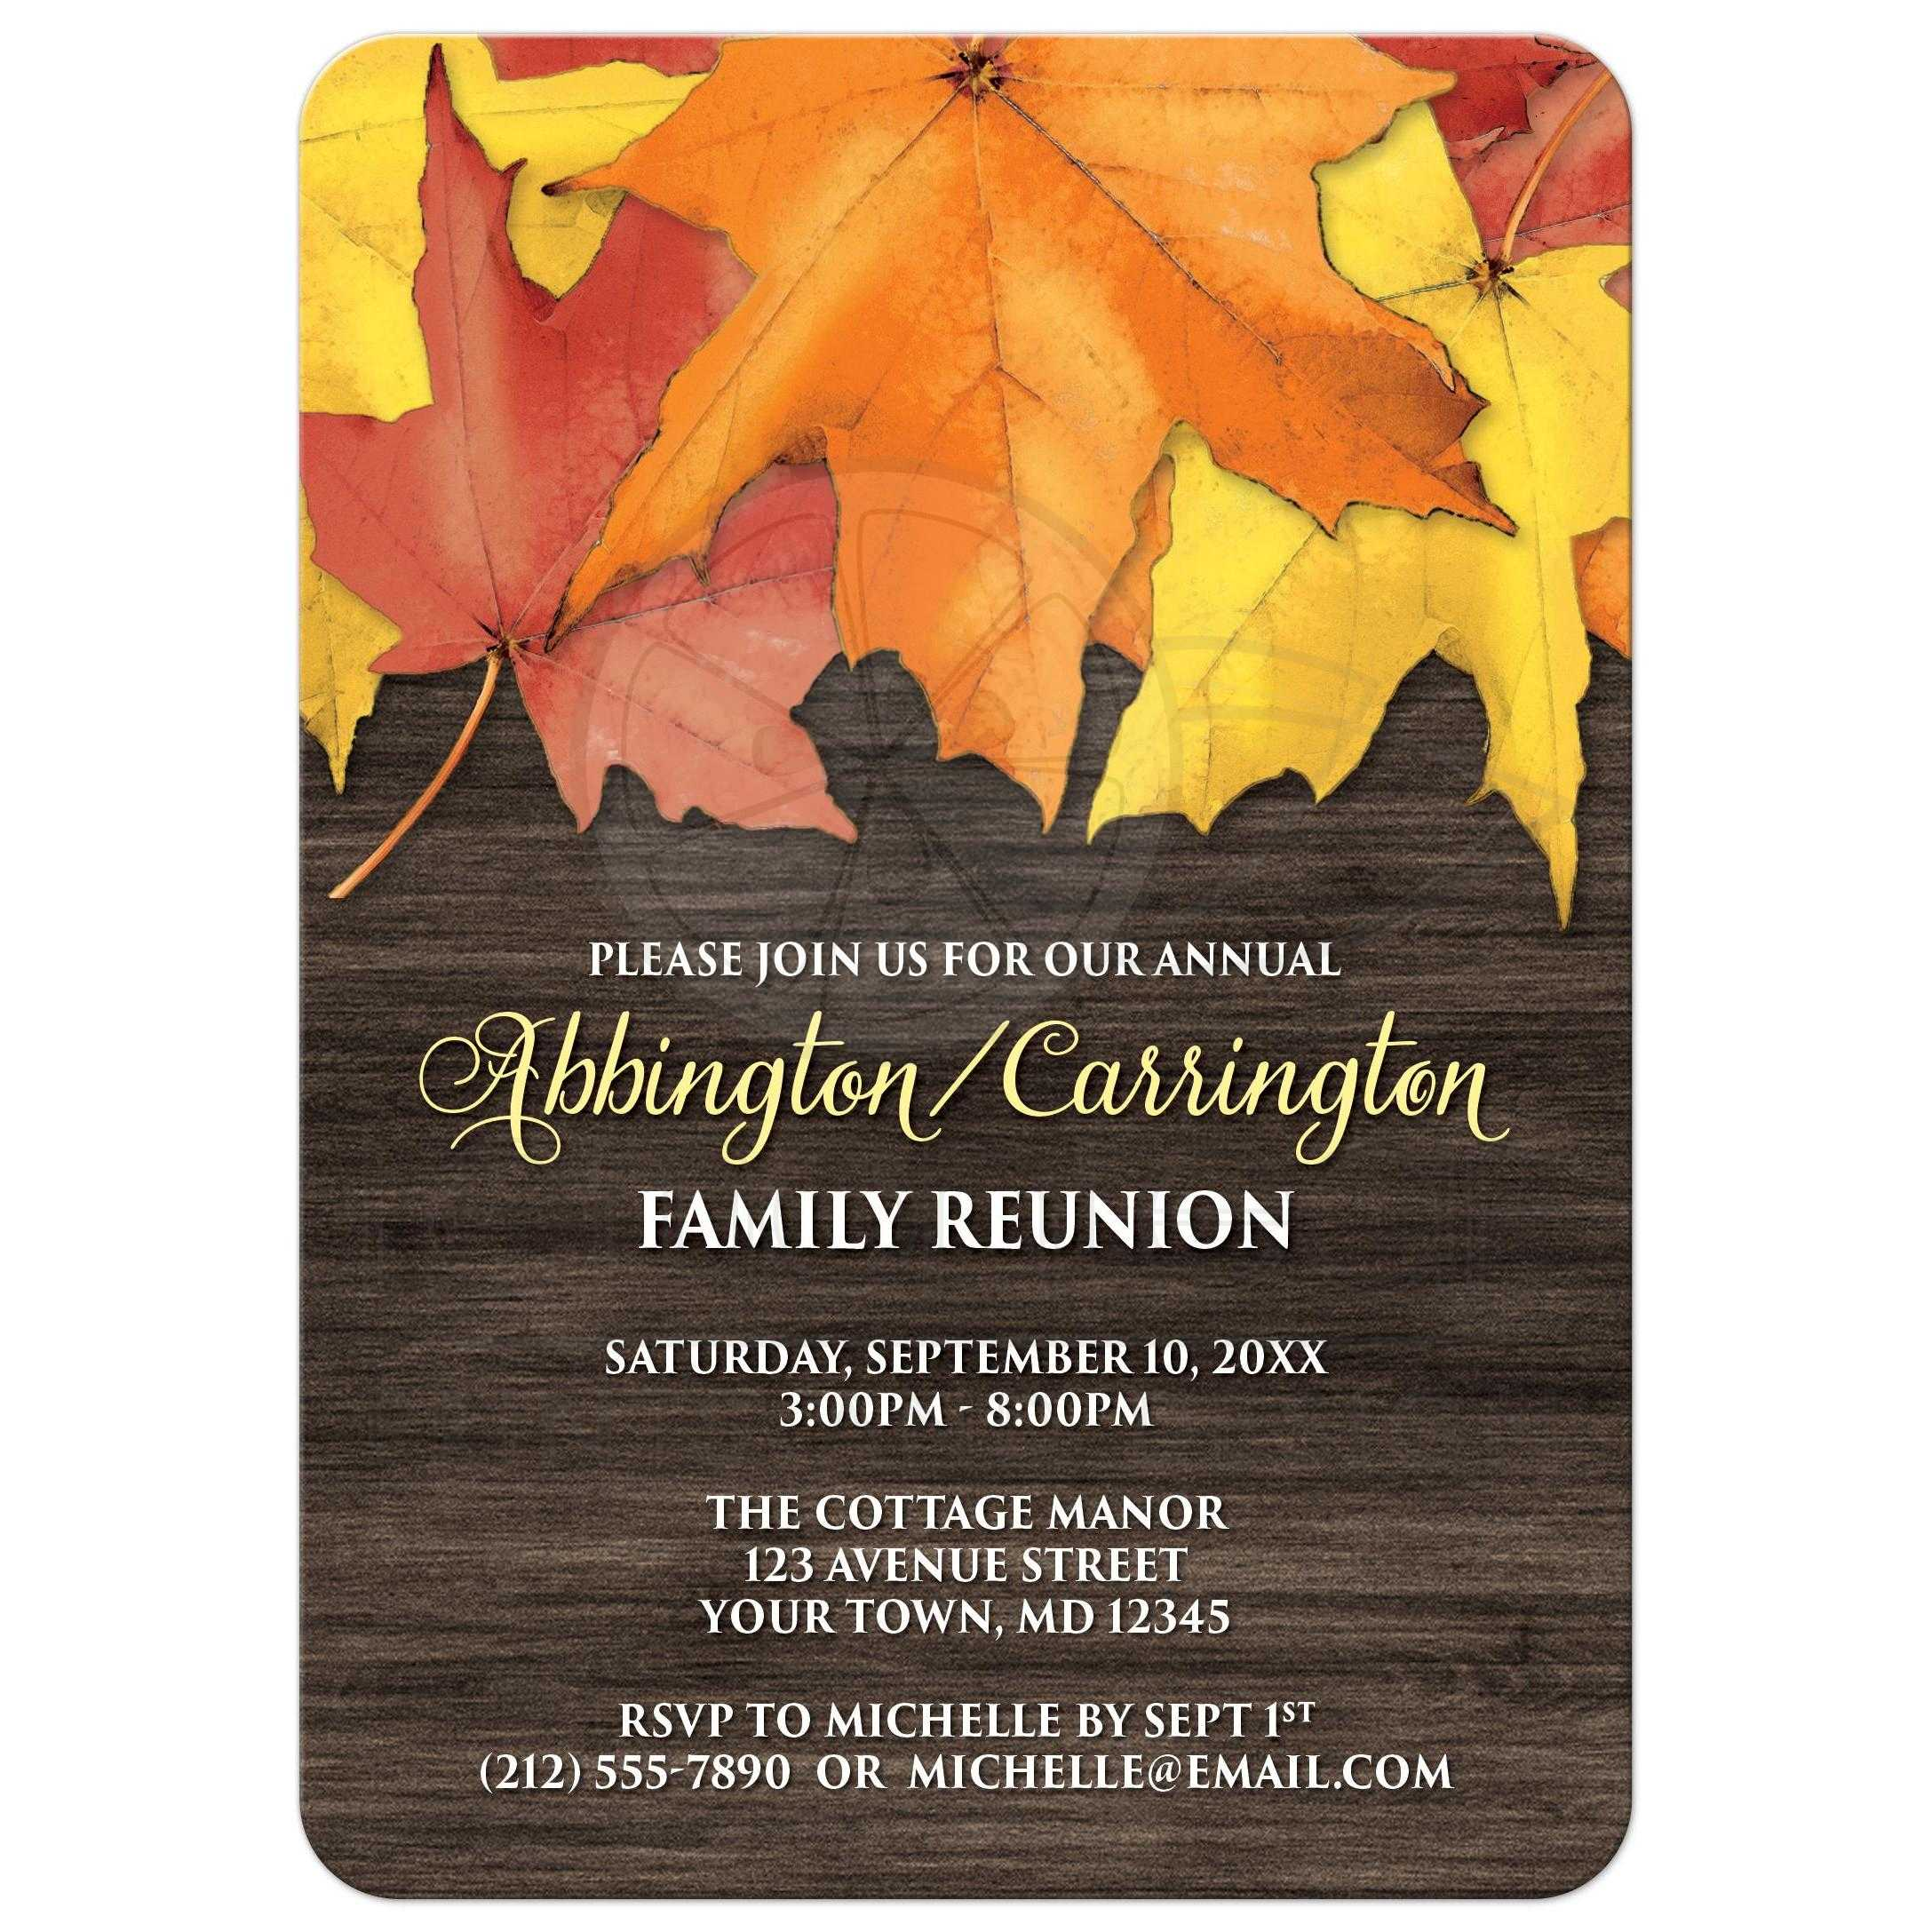 Reunion Invitations - Rustic Autumn Leaves and Wood